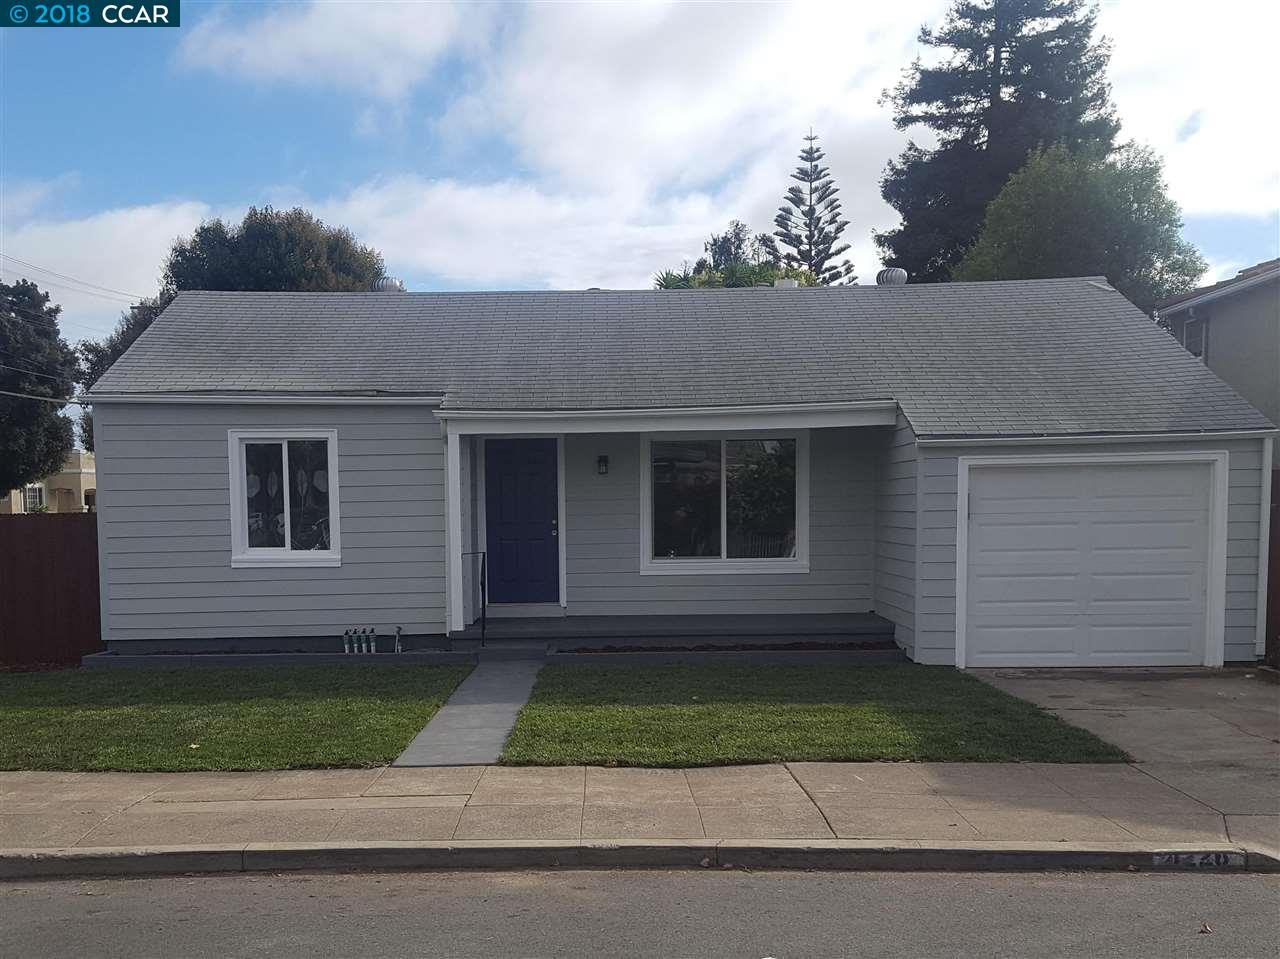 4226 ROOSEVELT AVE, RICHMOND, CA 94805